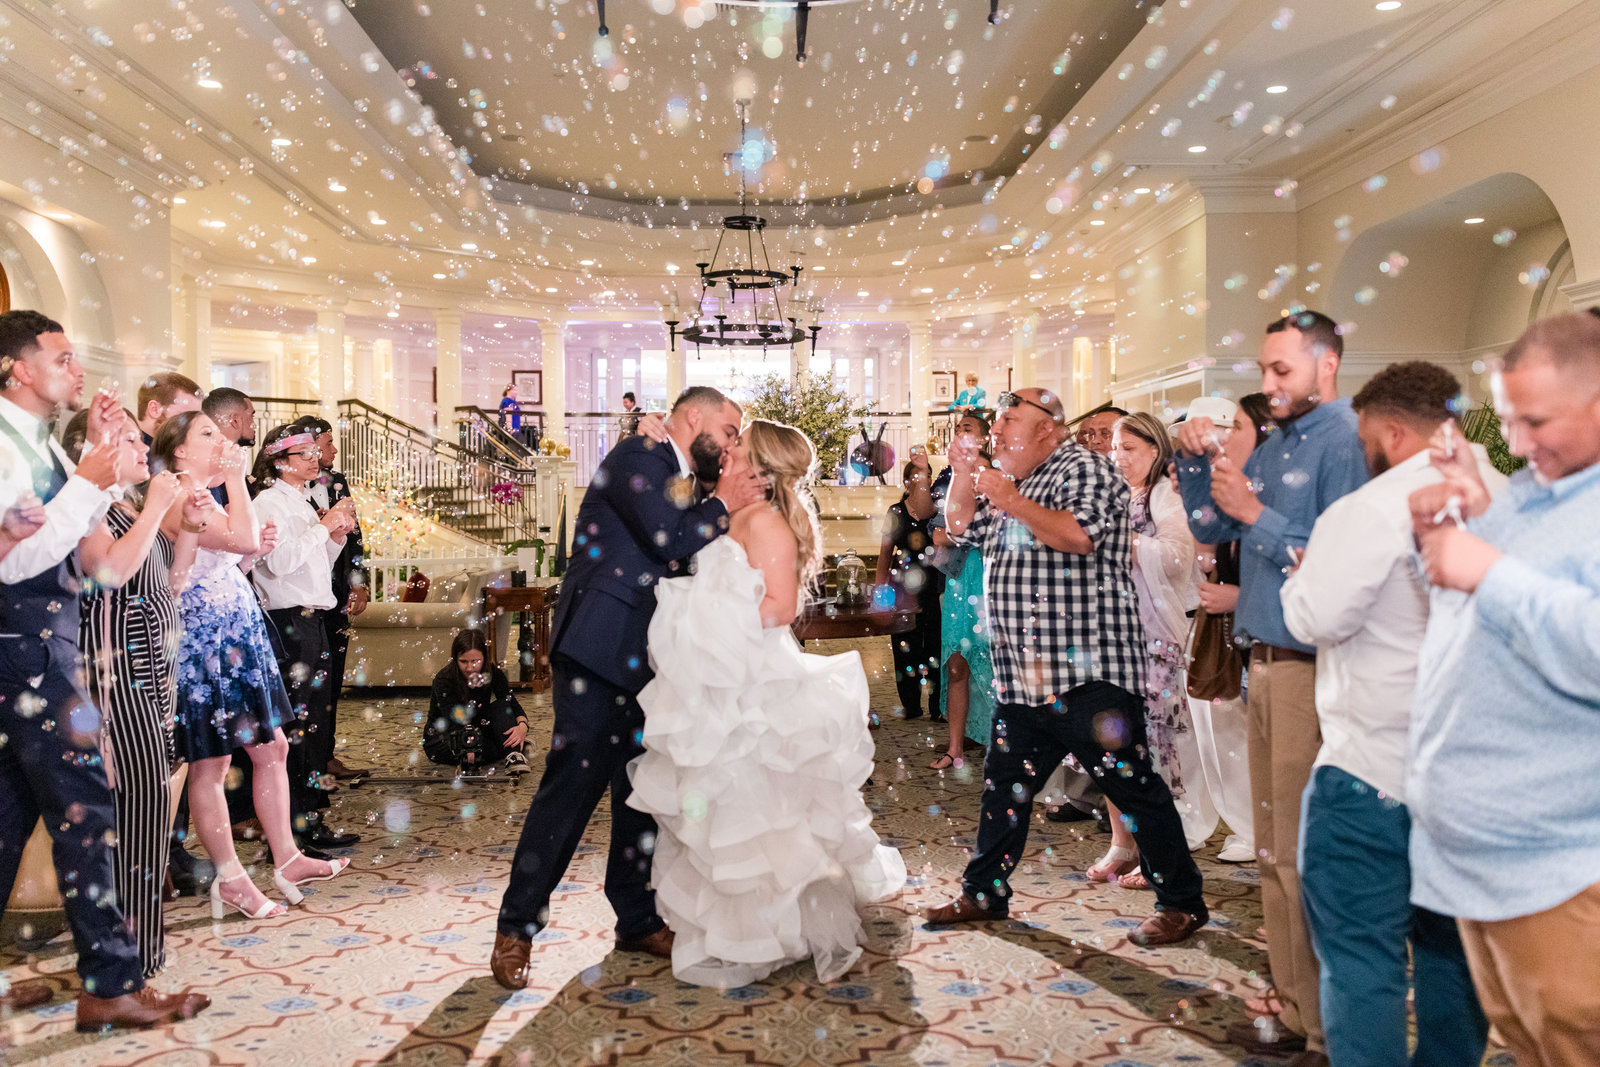 Jennifer_B_Photography-Pinehurst_Club-Pinehurst_NC-Wedding_Day-Caleb___Miranda-JB_Favs-2019-0333